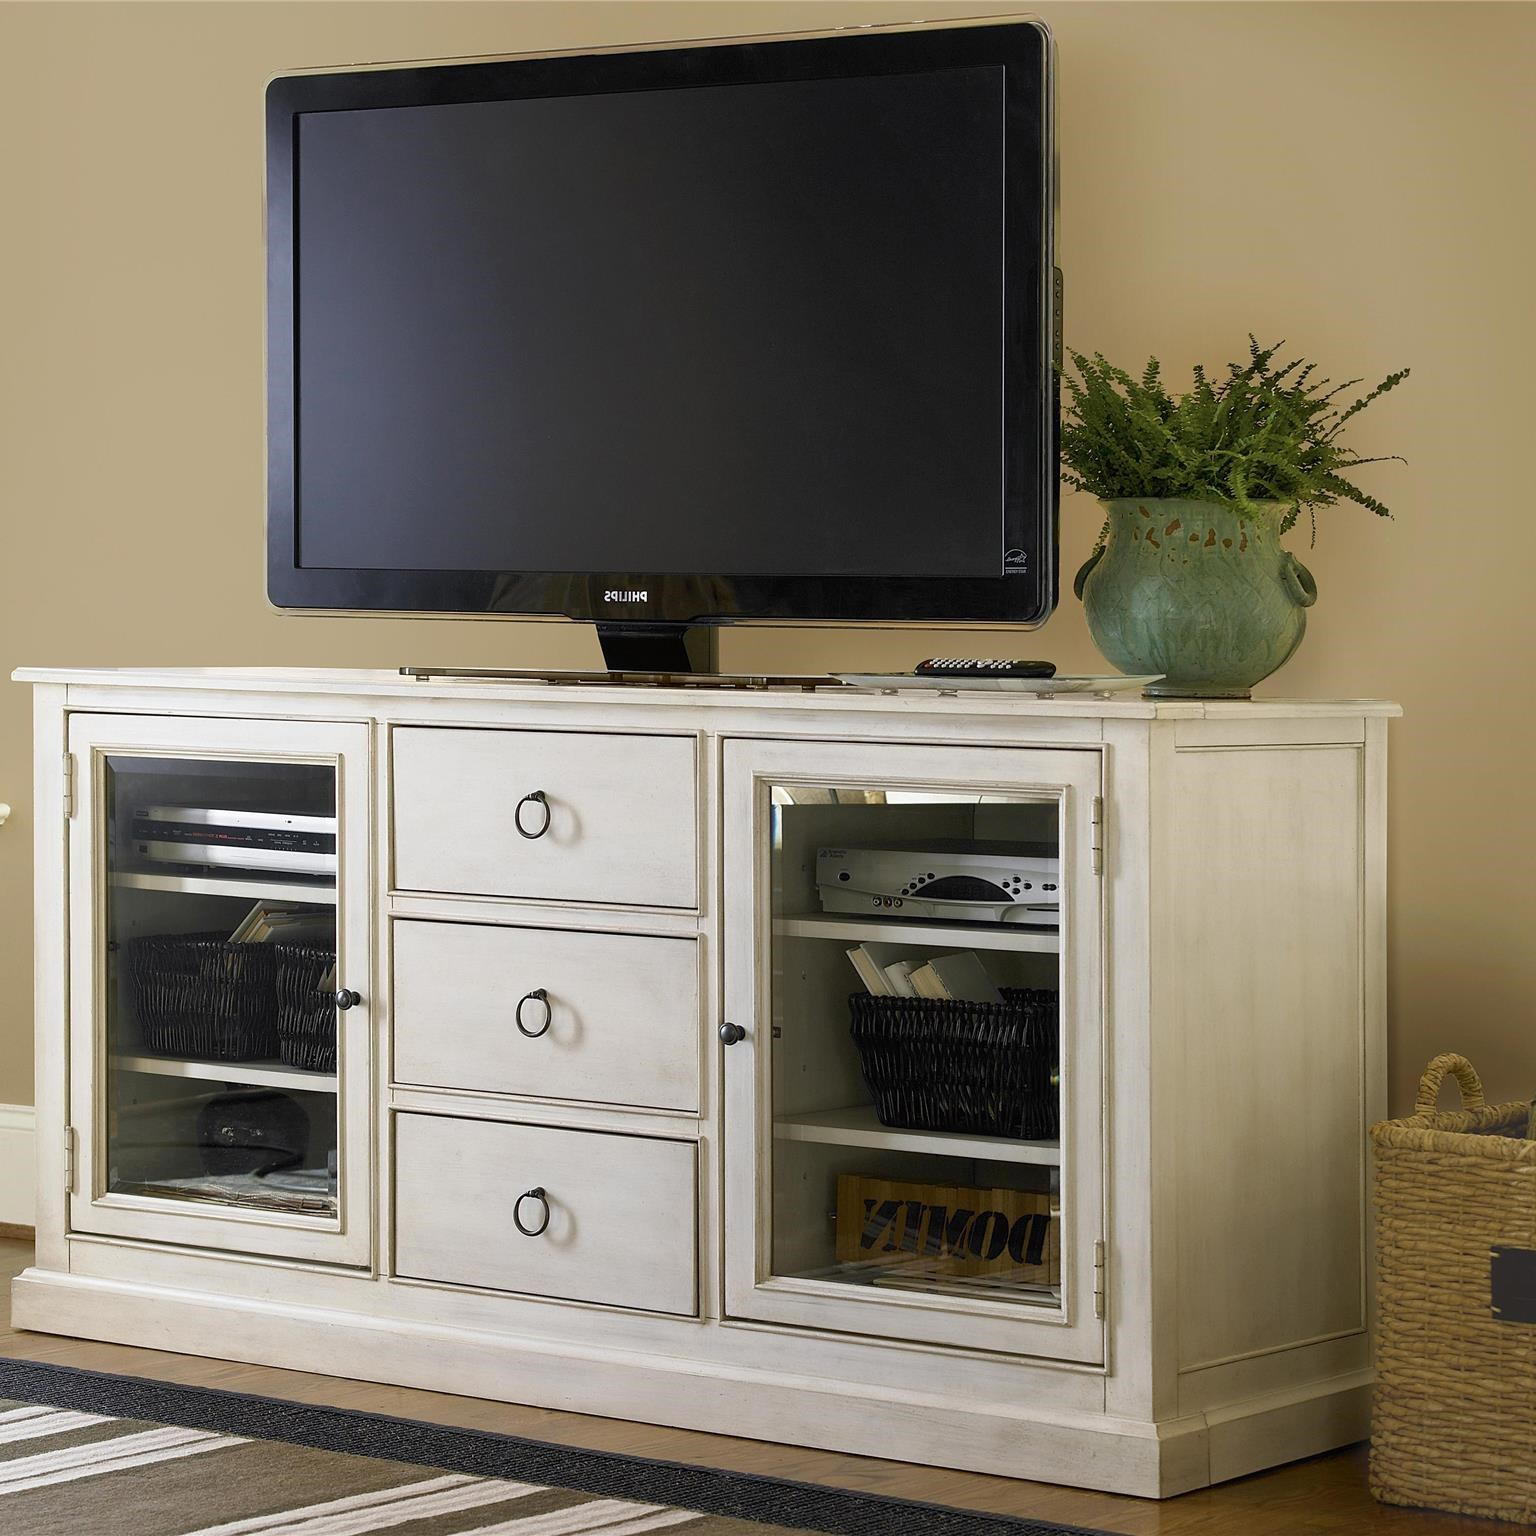 Furniture Shopping Tips For Every Room From Jacksonville Furniture Mart Jacksonville